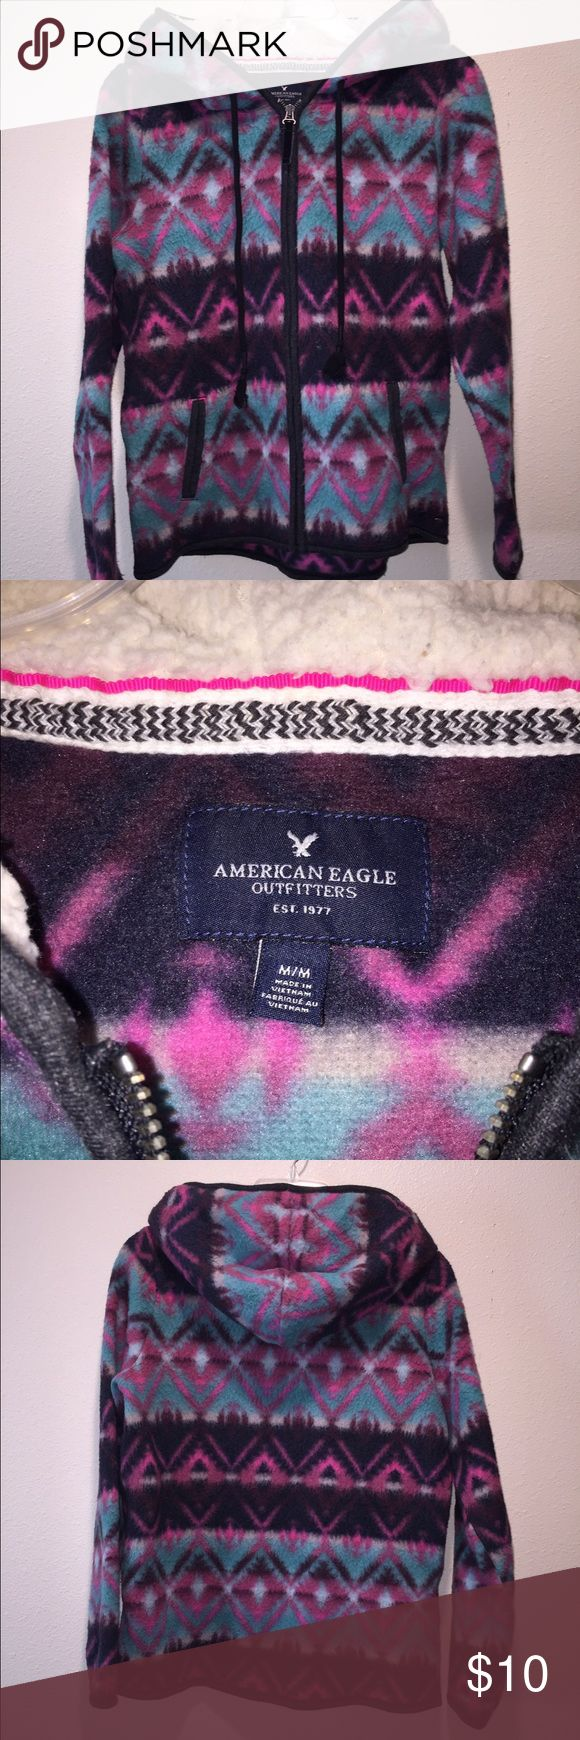 American Eagle Aztec Zip Up Medium Super cute! American Eagle women's Shurpa Lined Aztec Zip Up Sweatshirt Size Medium American Eagle Outfitters Jackets & Coats